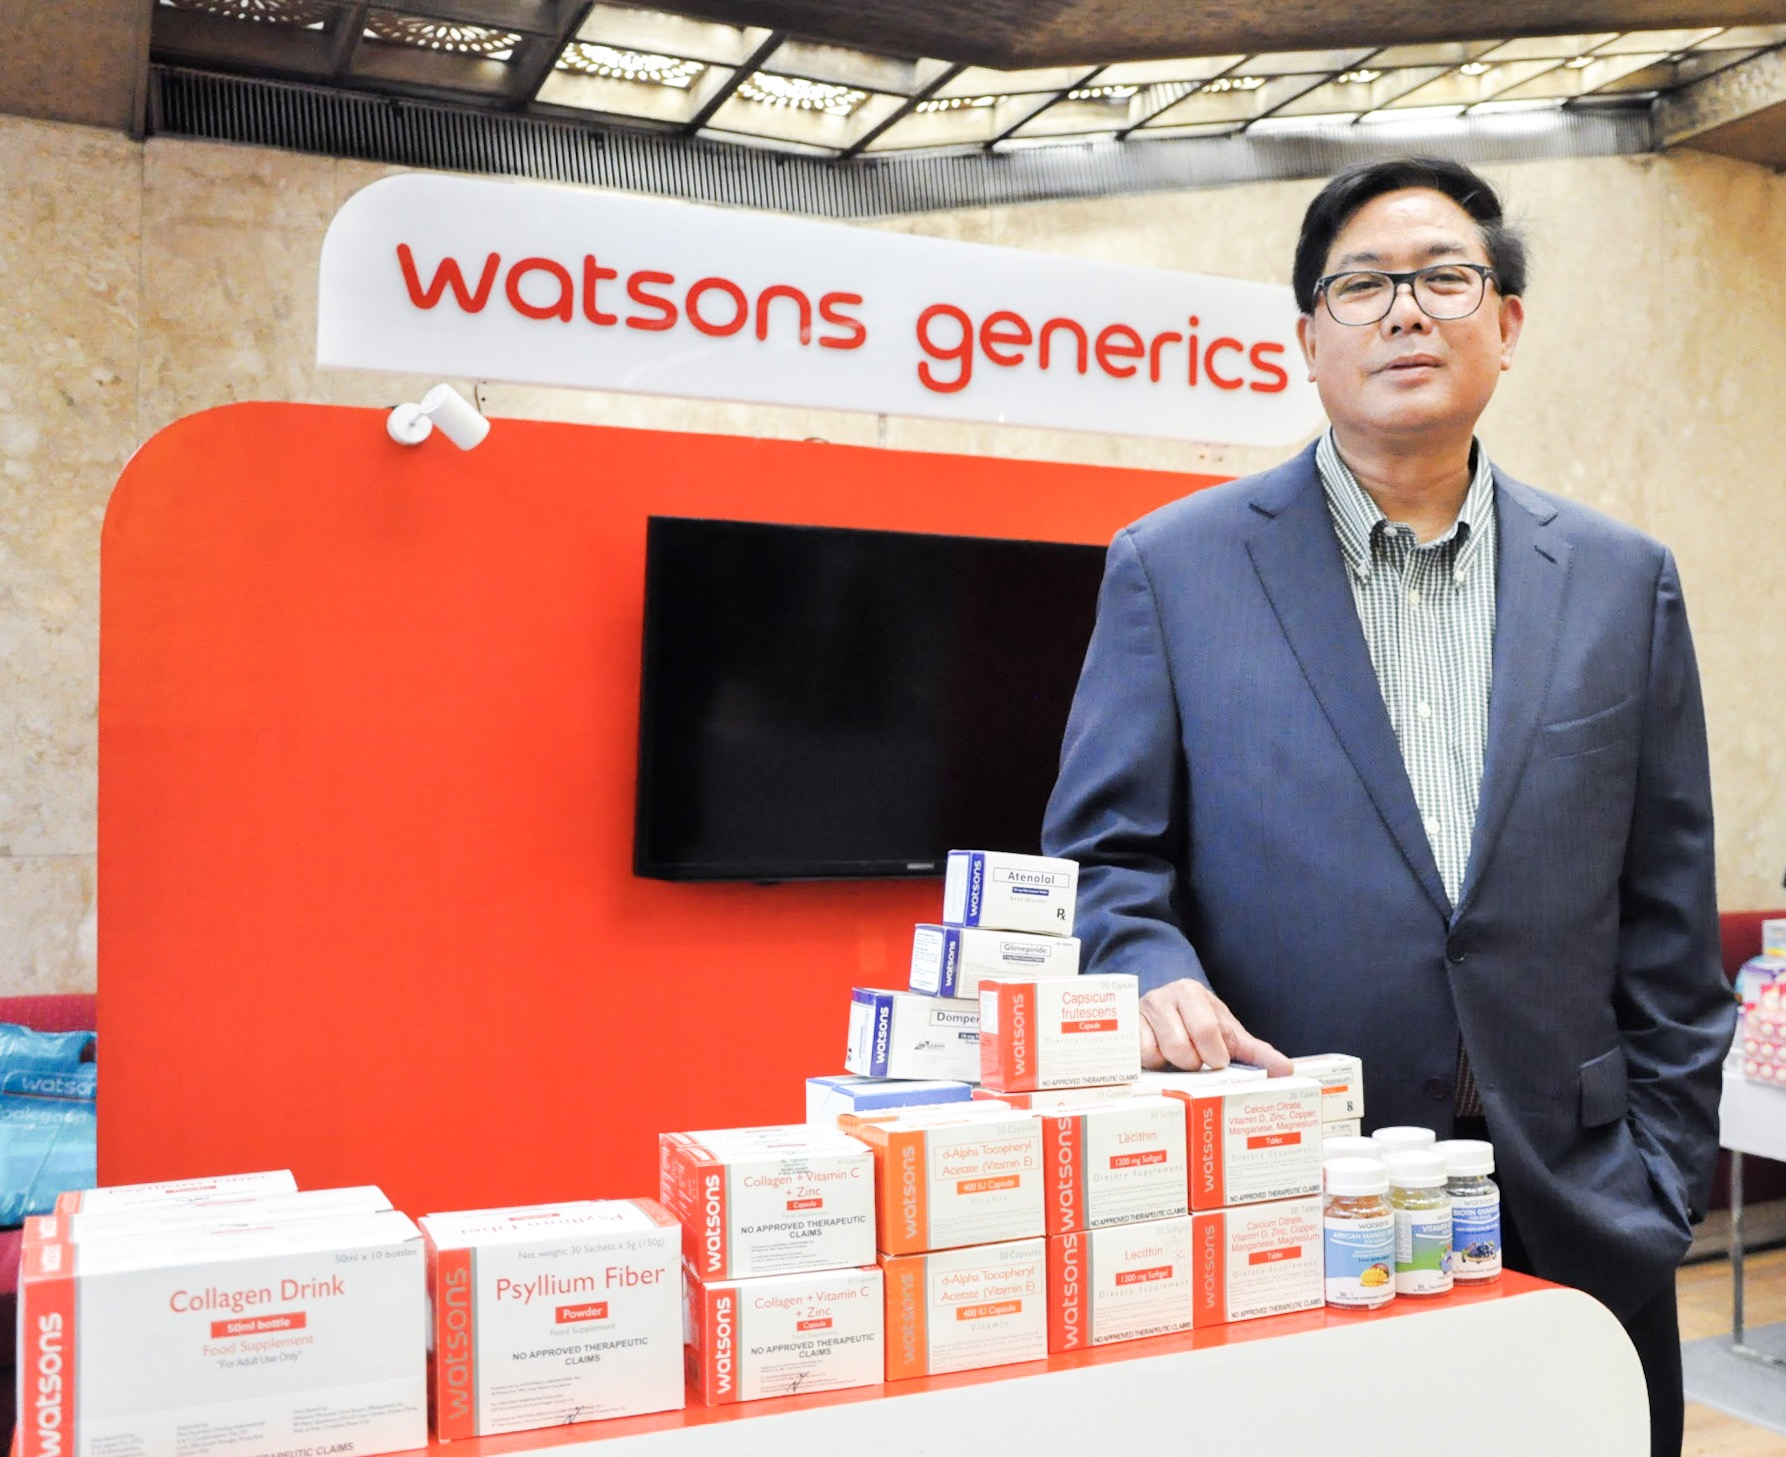 Danilo Chiong, Health Business Director of Watsons Philippines, showcases the brand's Generics line